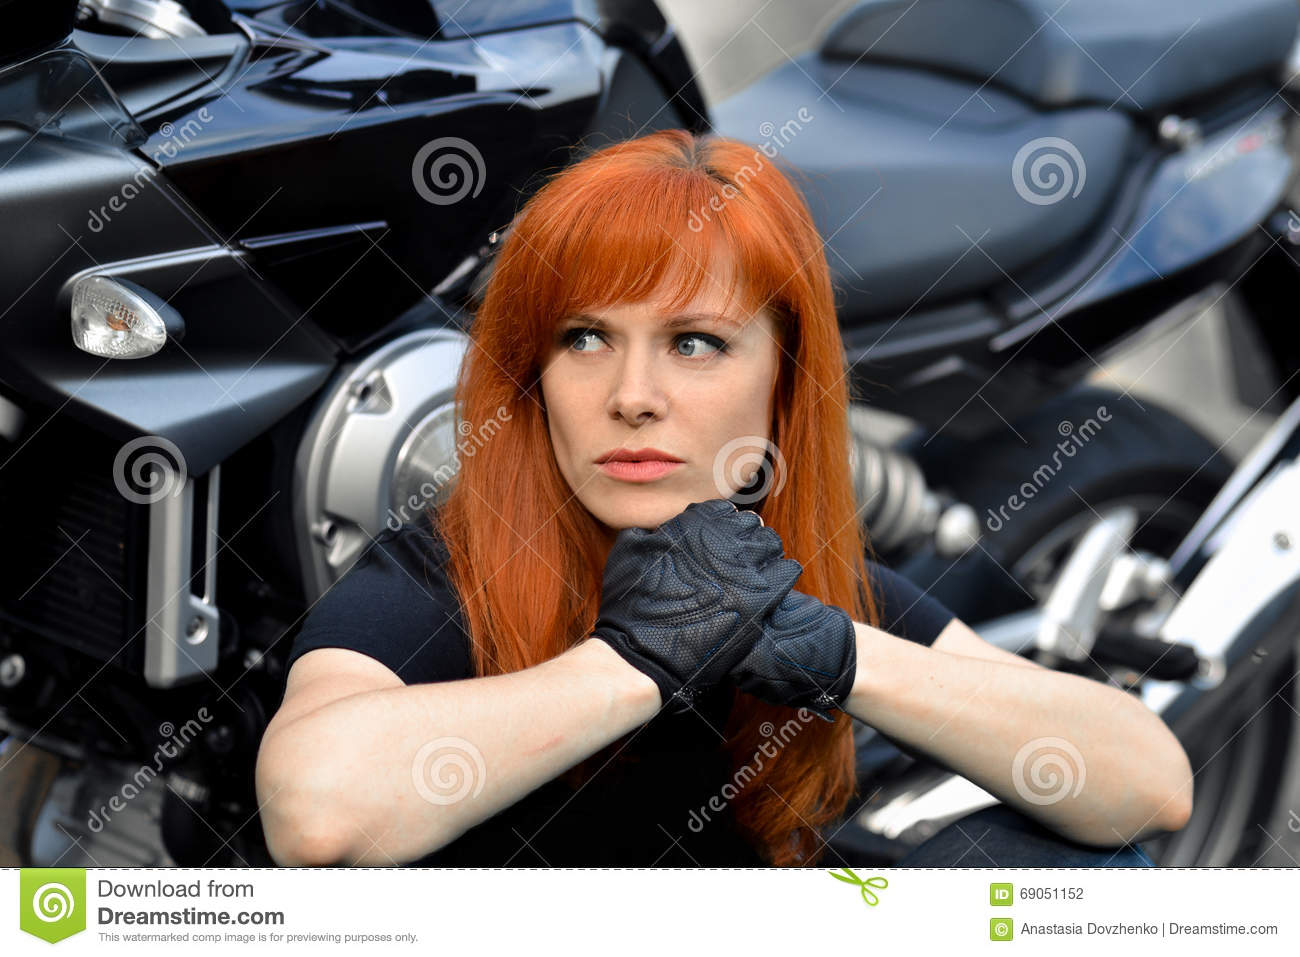 Serious,powerful,thinking leader of bikers sit near the bike